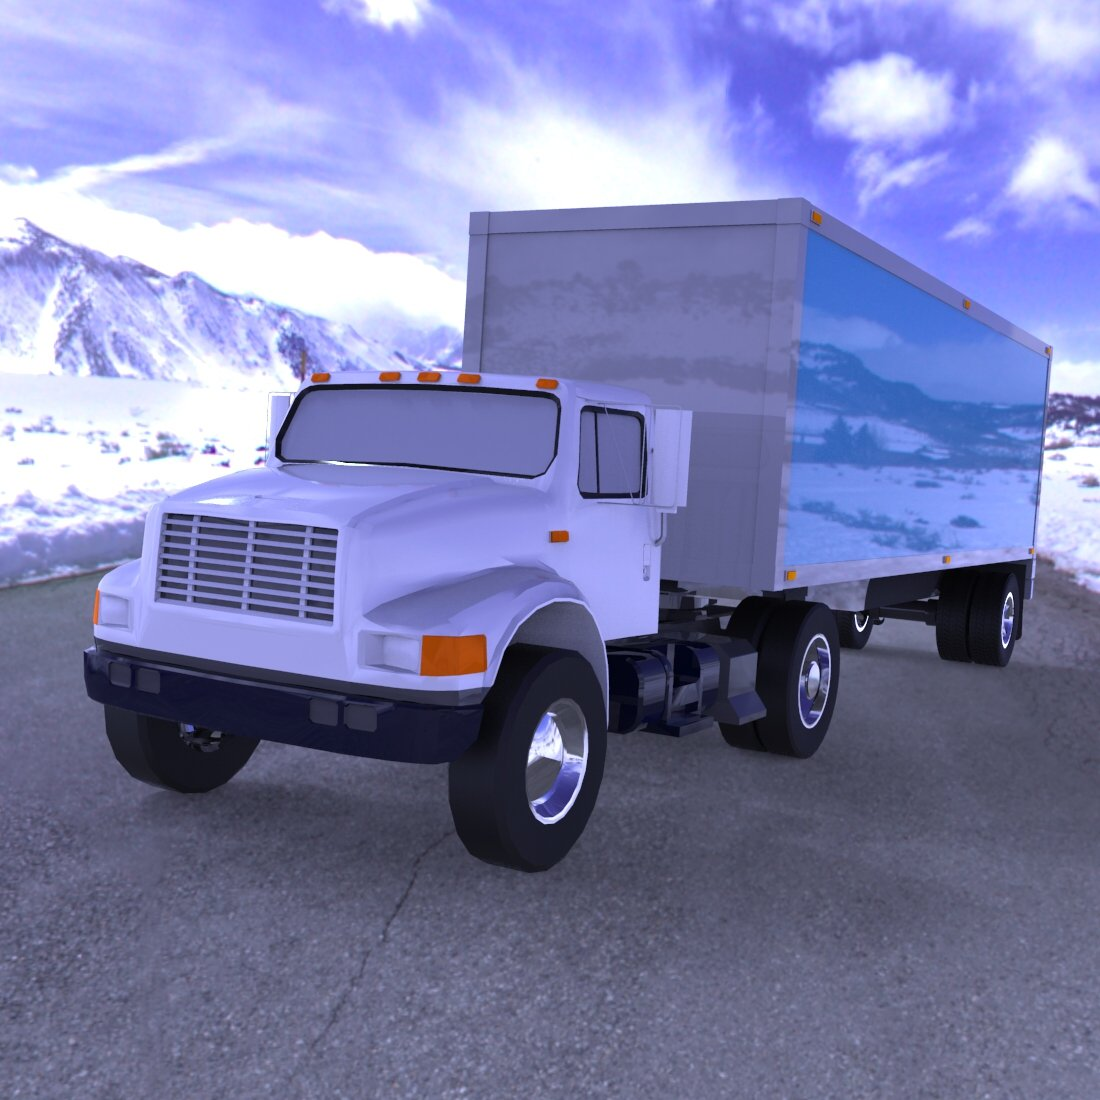 Truck with Trailer for Wavefront OBJ - Extended License by Digimation_ModelBank